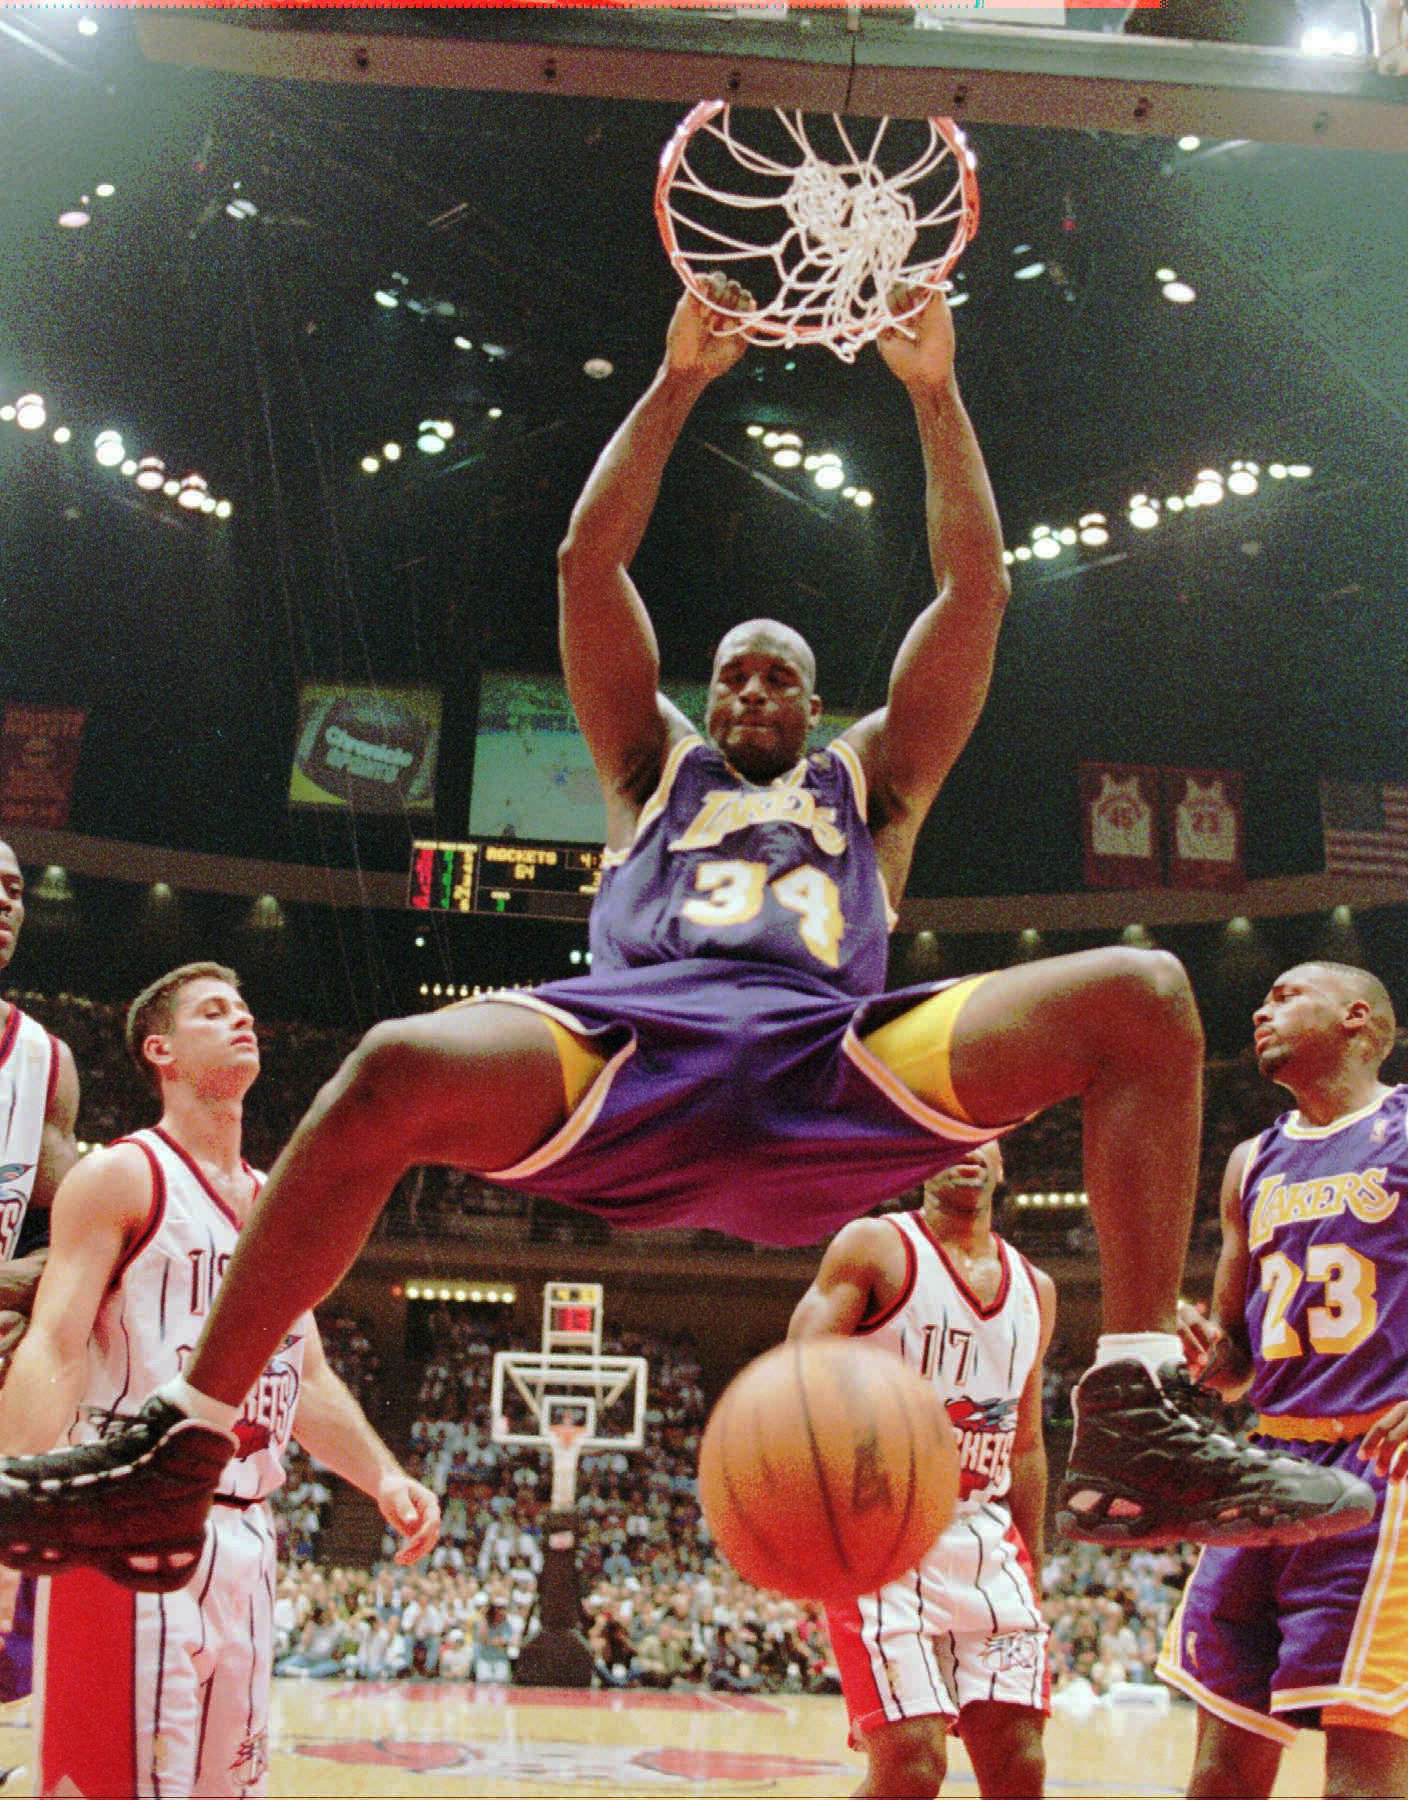 Shaquille O'Neal says on Twitter he is 'about to retire' - The Blade